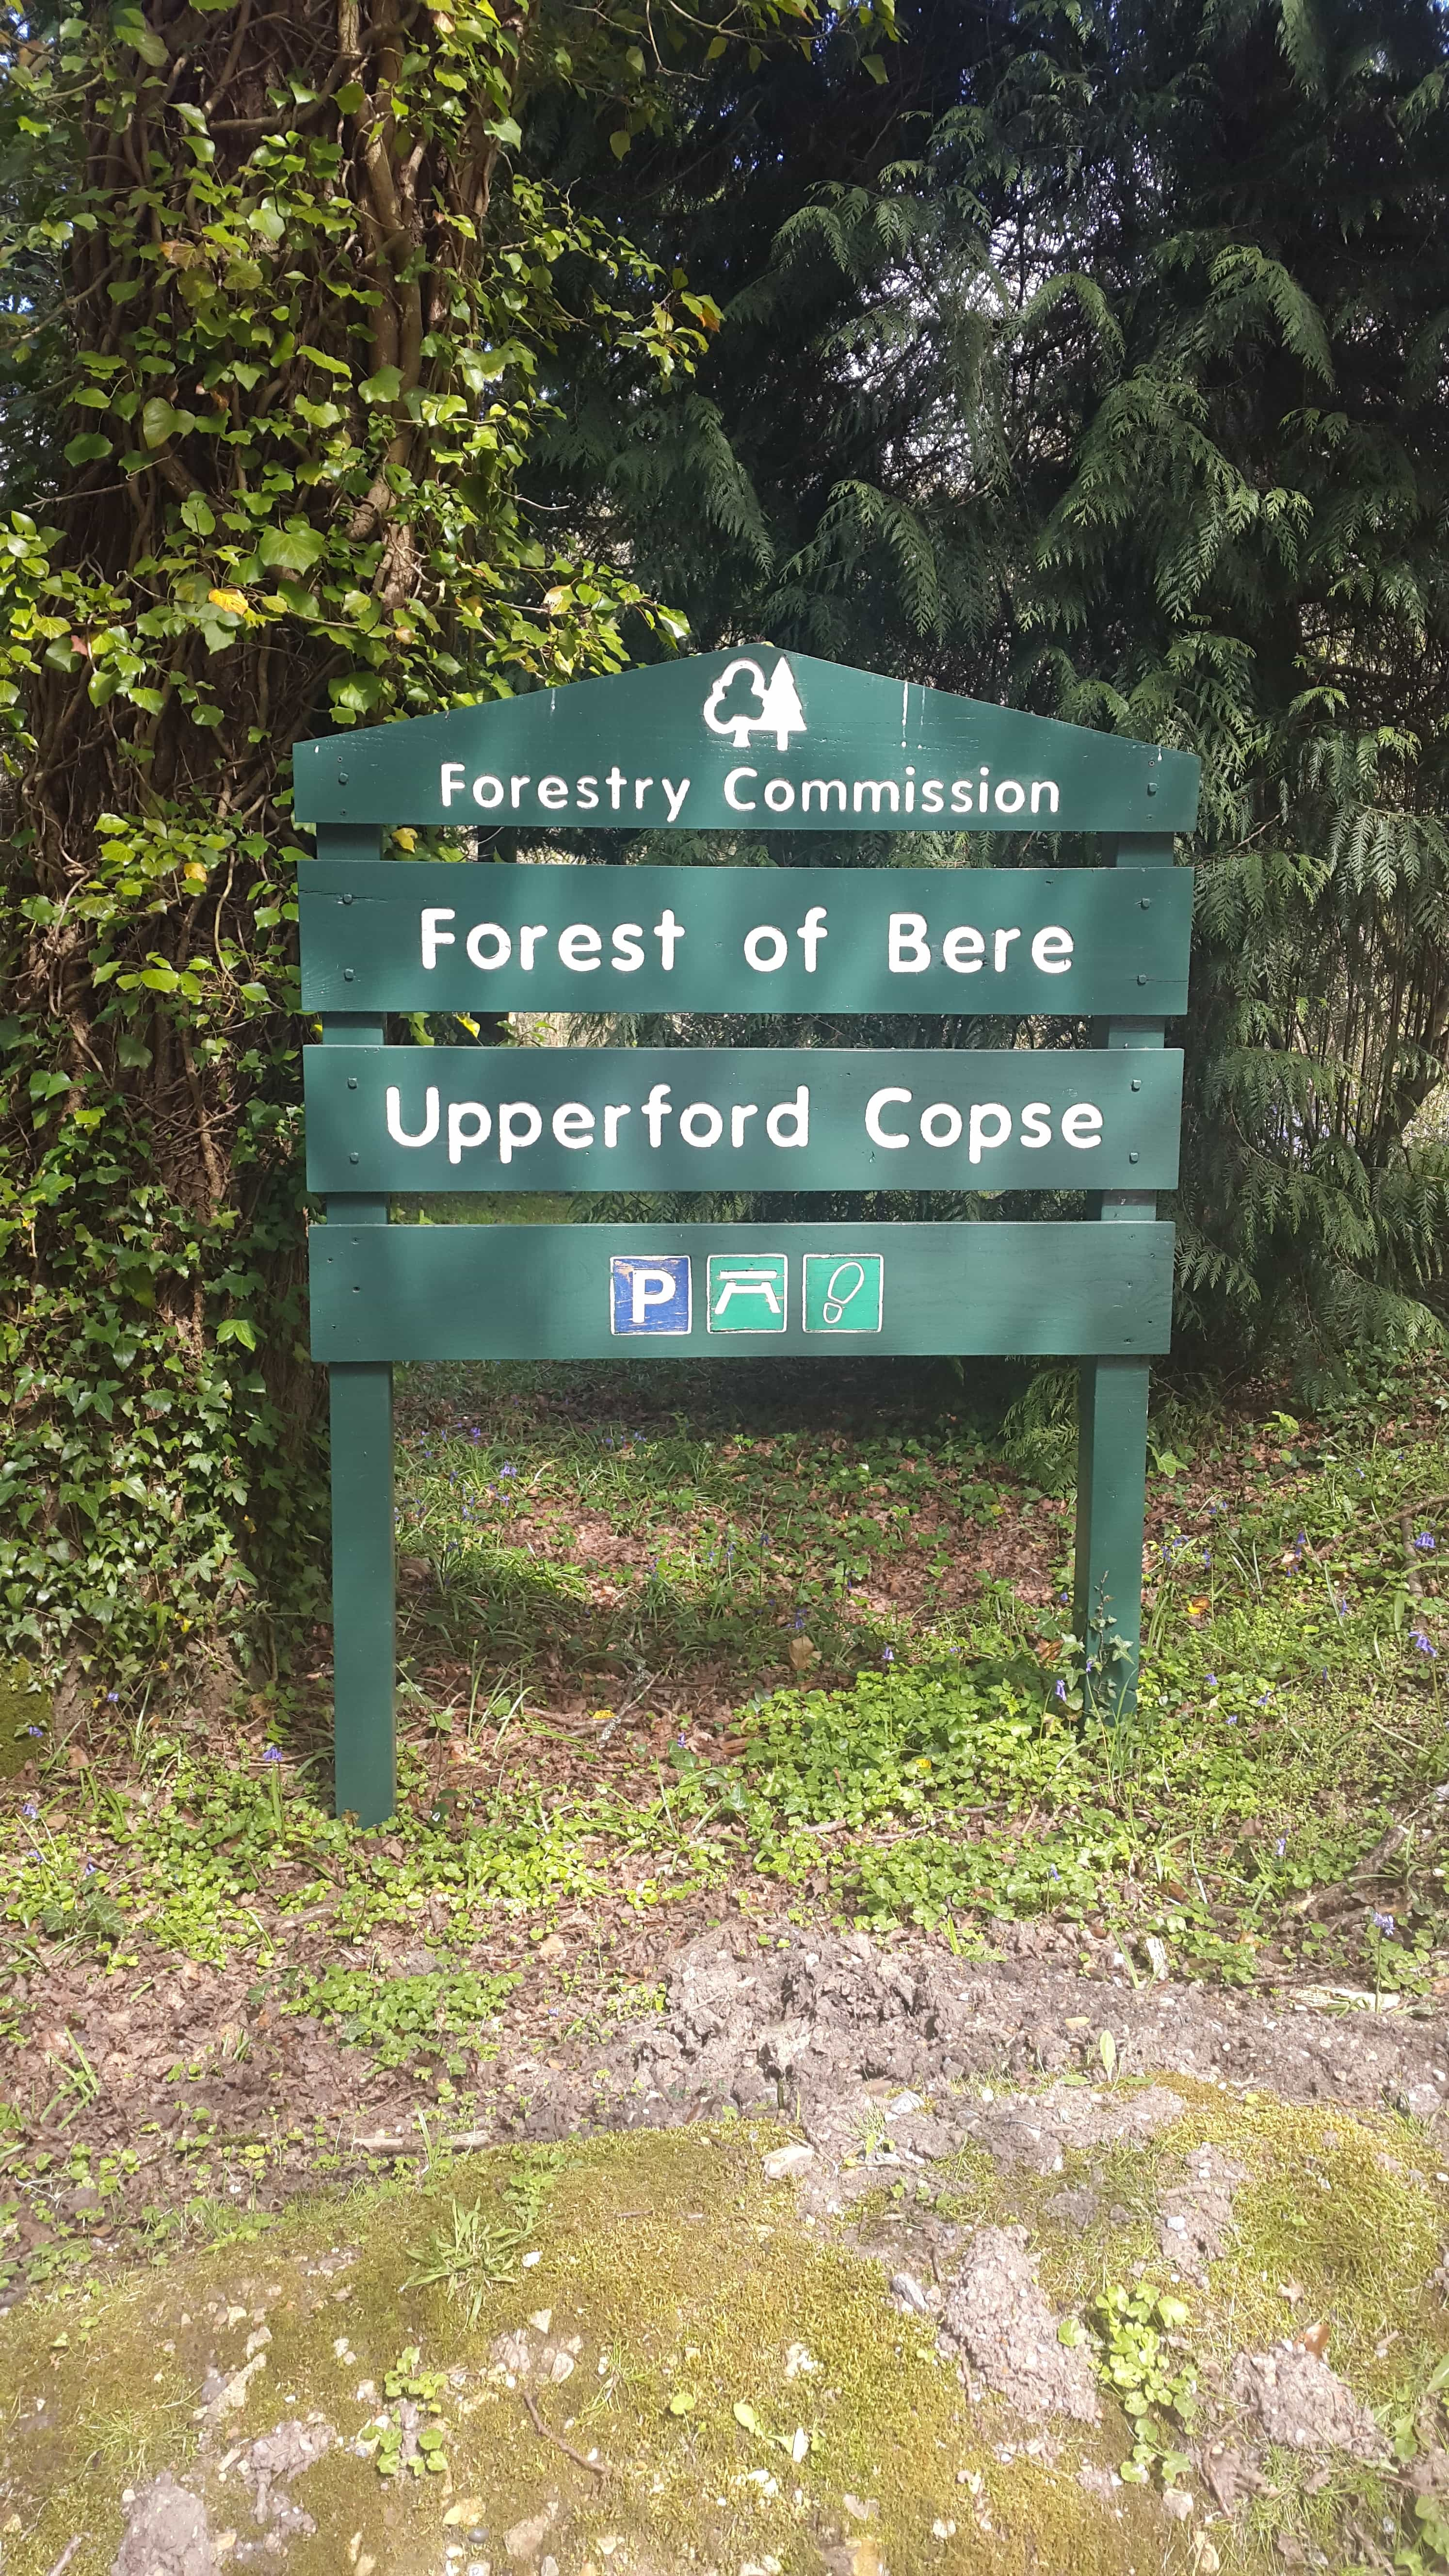 Forest of Bere, Upperford Copse